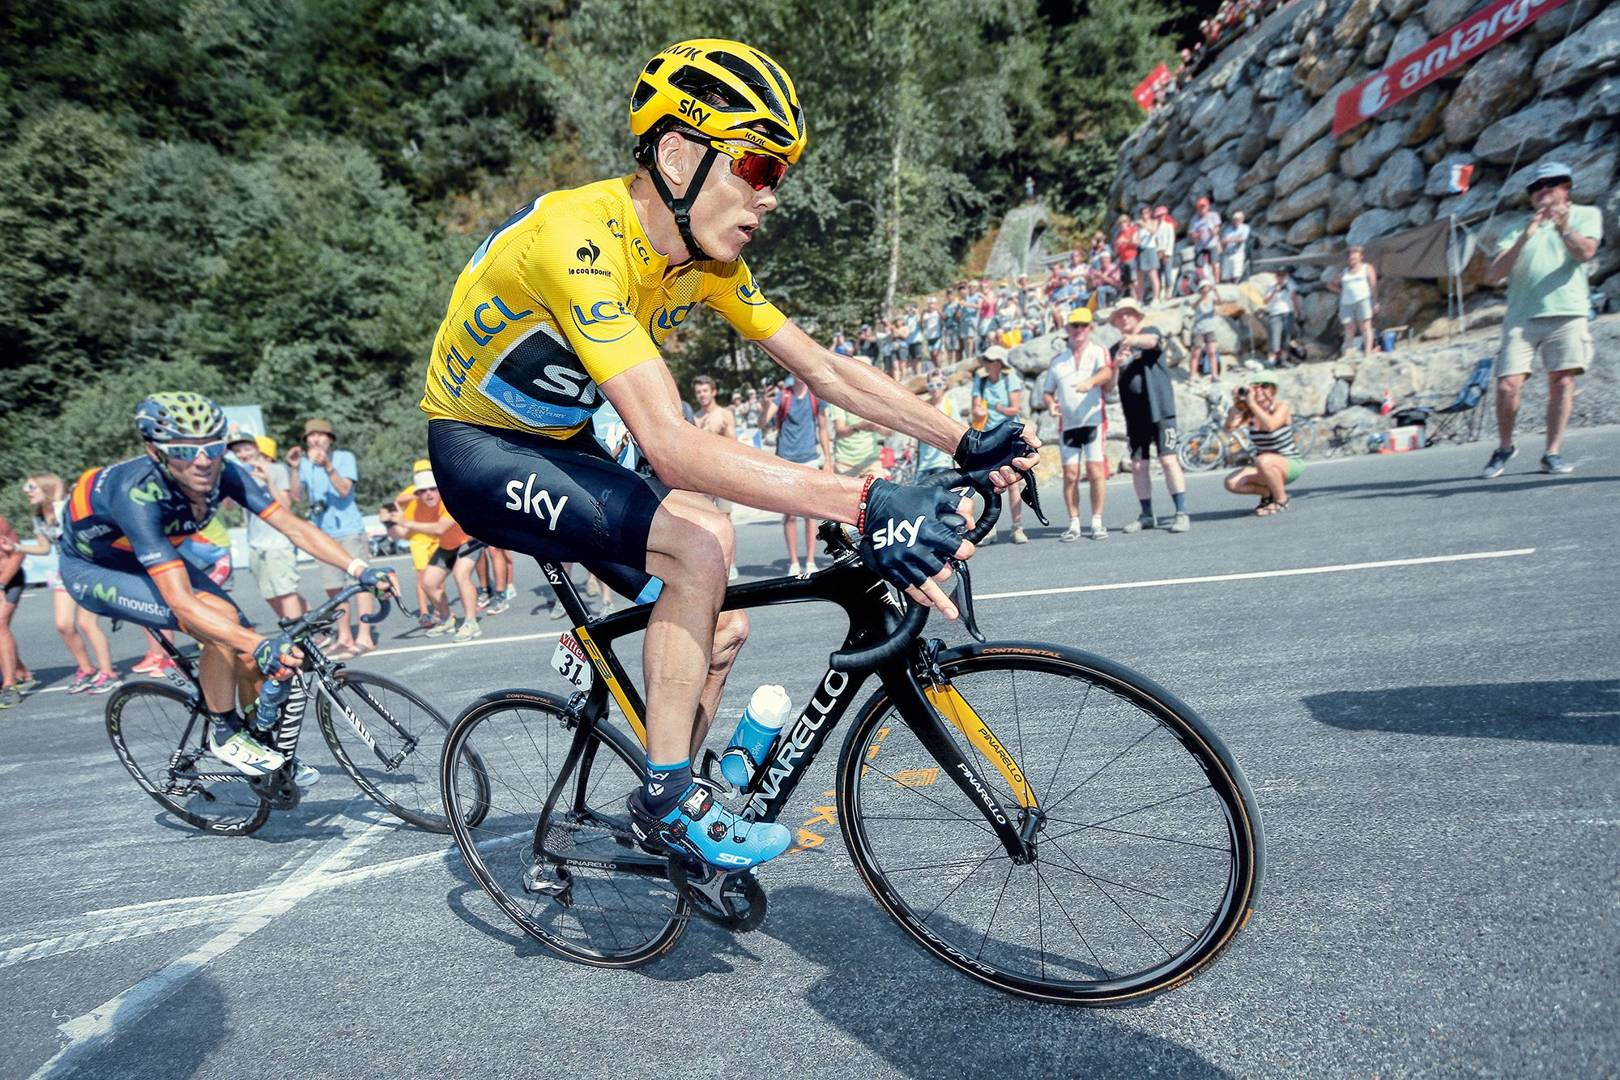 Tour de France: WIRED uncovers the science behind Team Sky and Chris